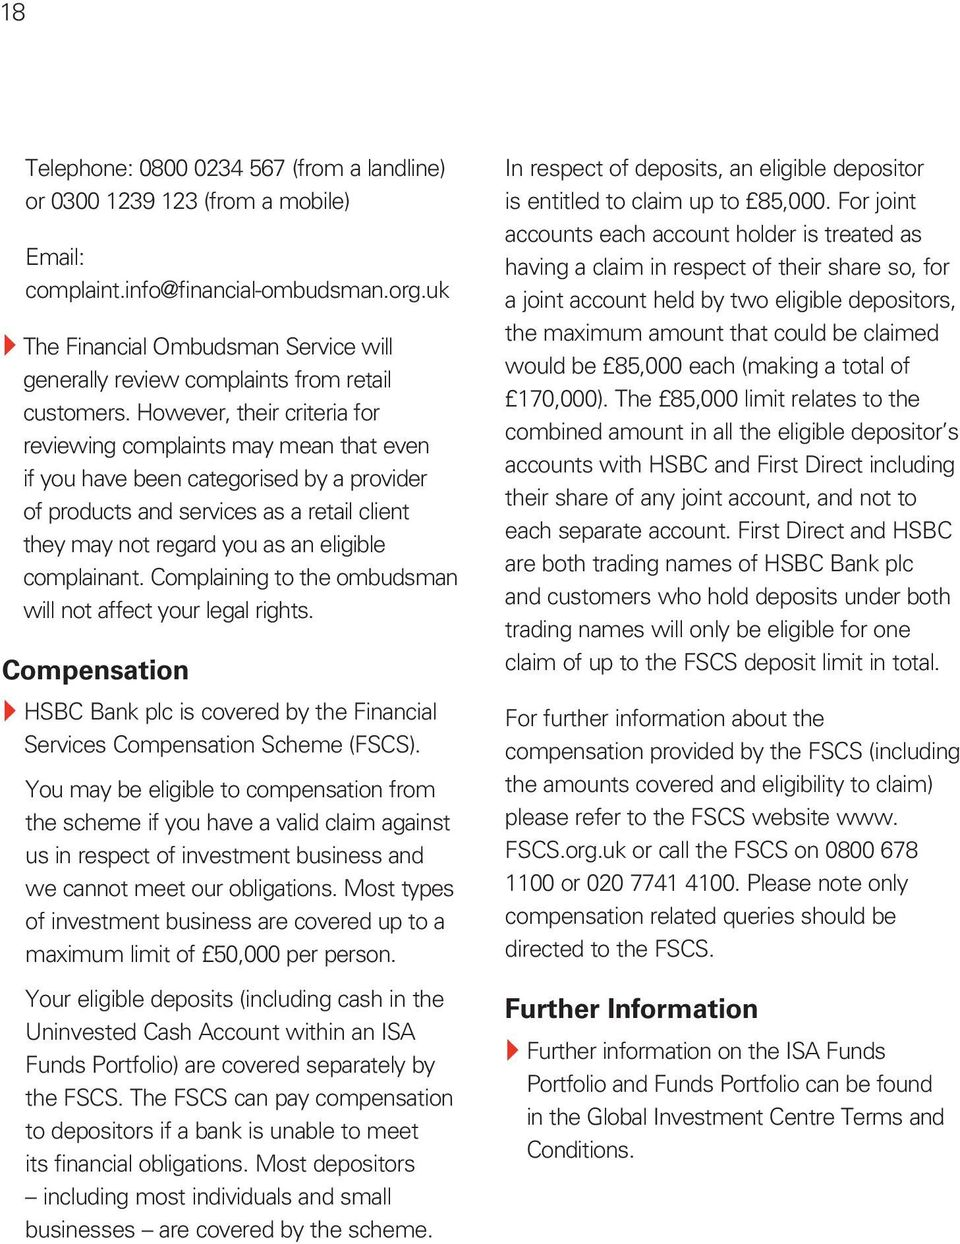 Key Features of the Funds Portfolio and ISA Funds Portfolio - PDF